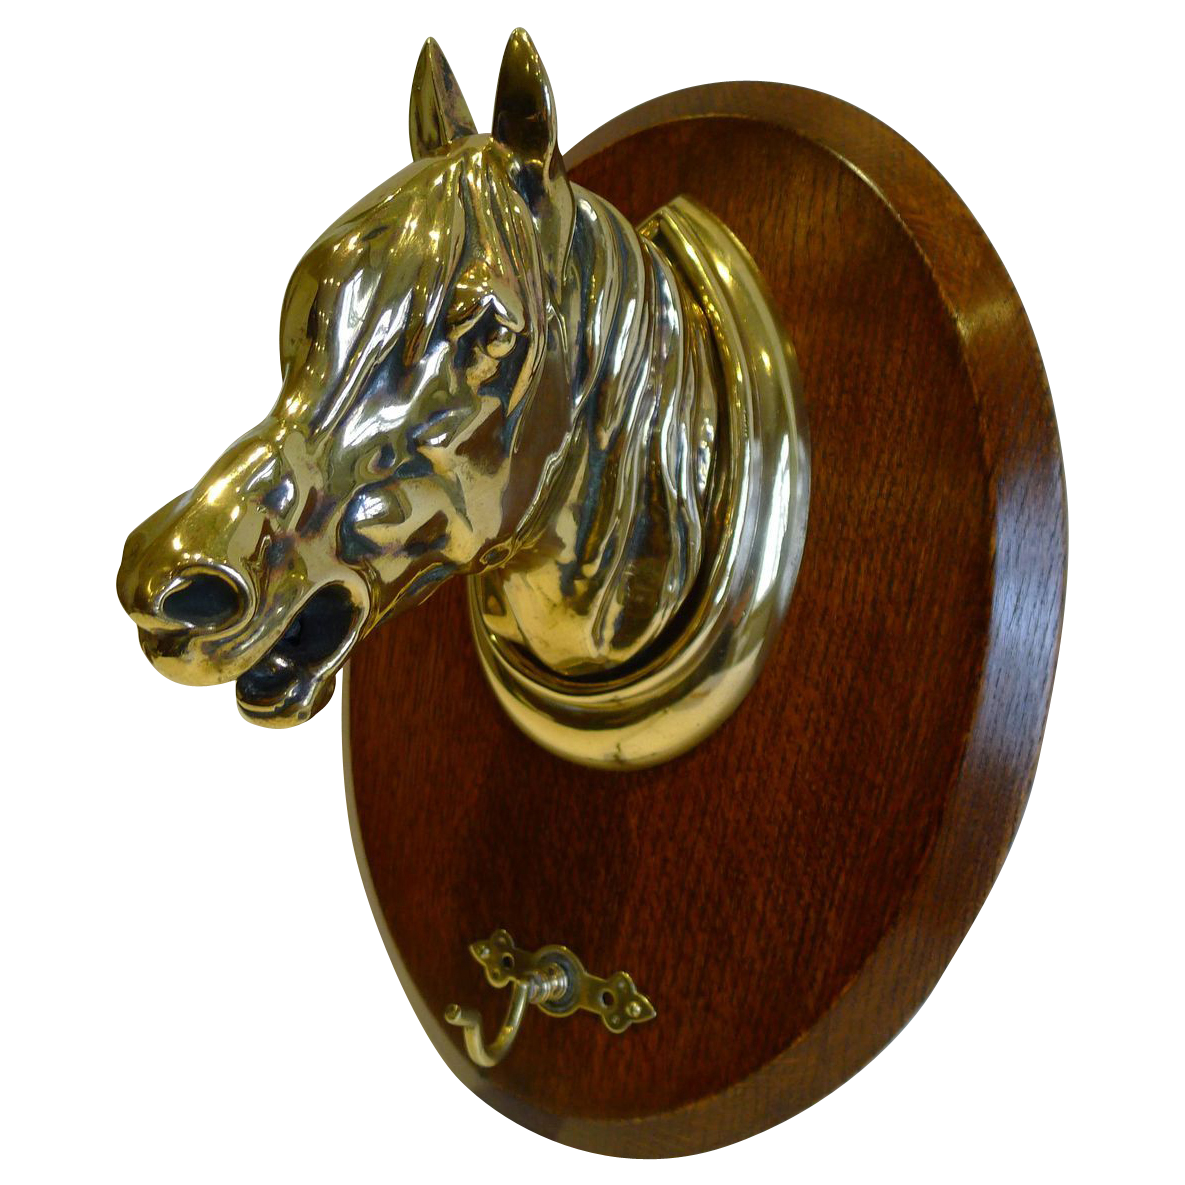 Antique English Oak & Brass Equestrian Crop Hook - Horse's Head c.1890